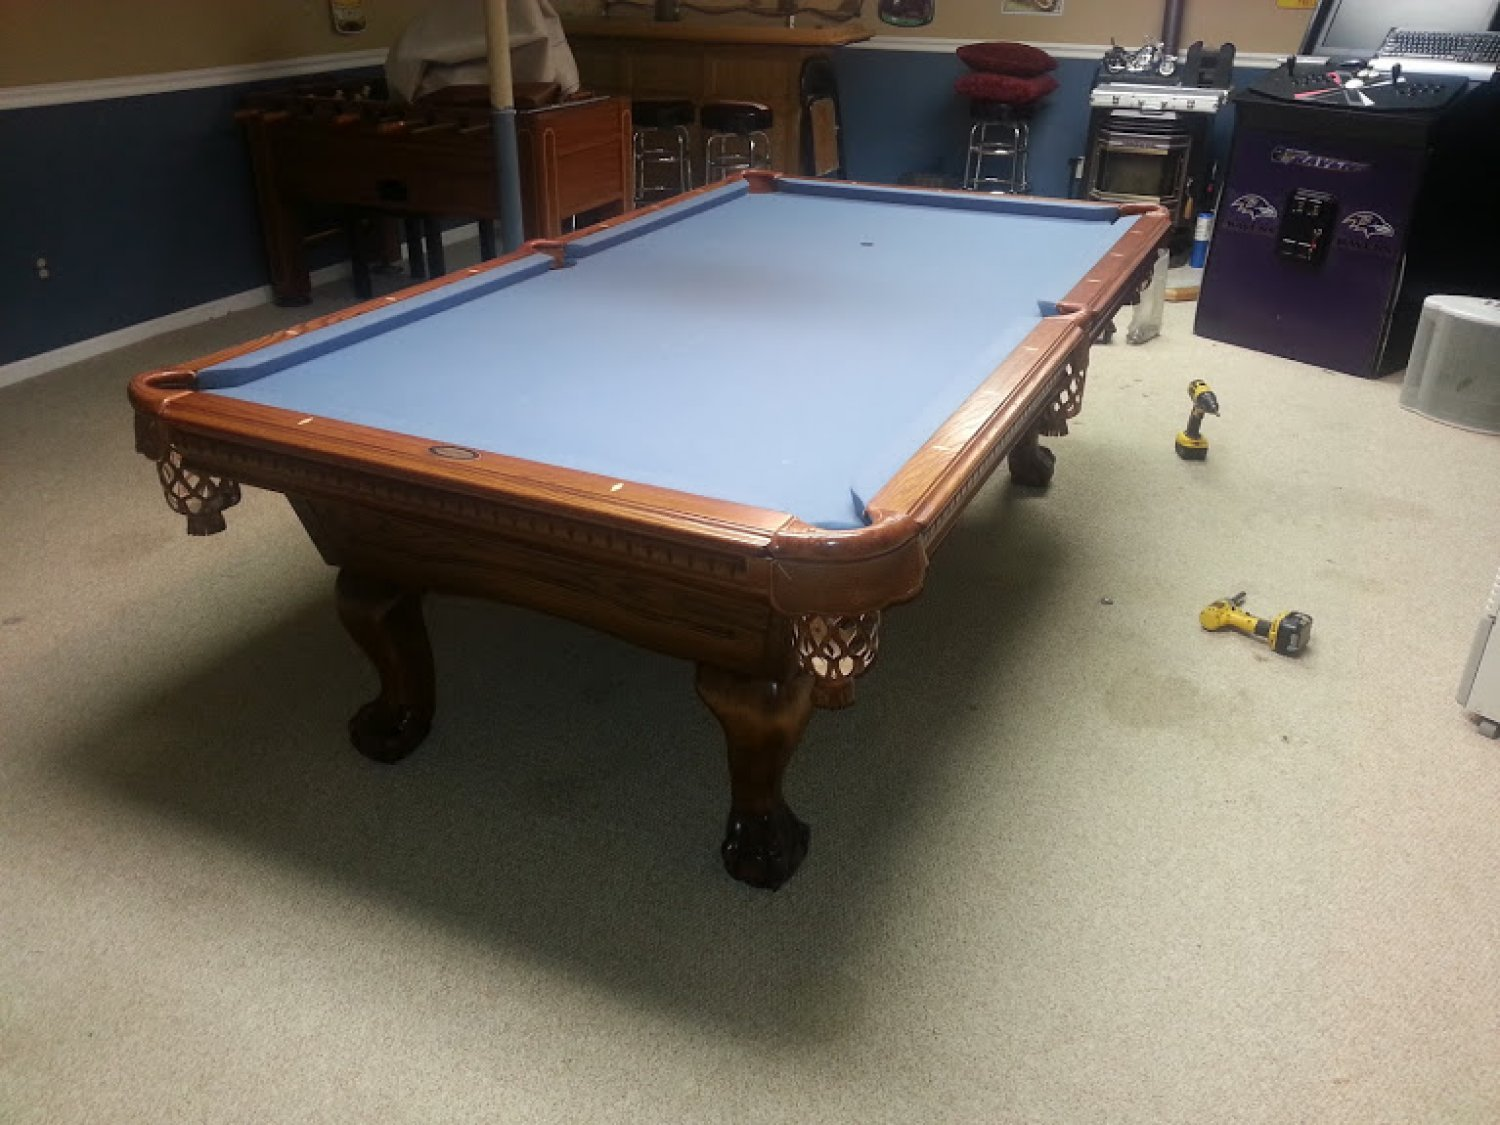 Pool Table Disassembly And Reassembly Experienced Professionals - Pool table assembly service near me